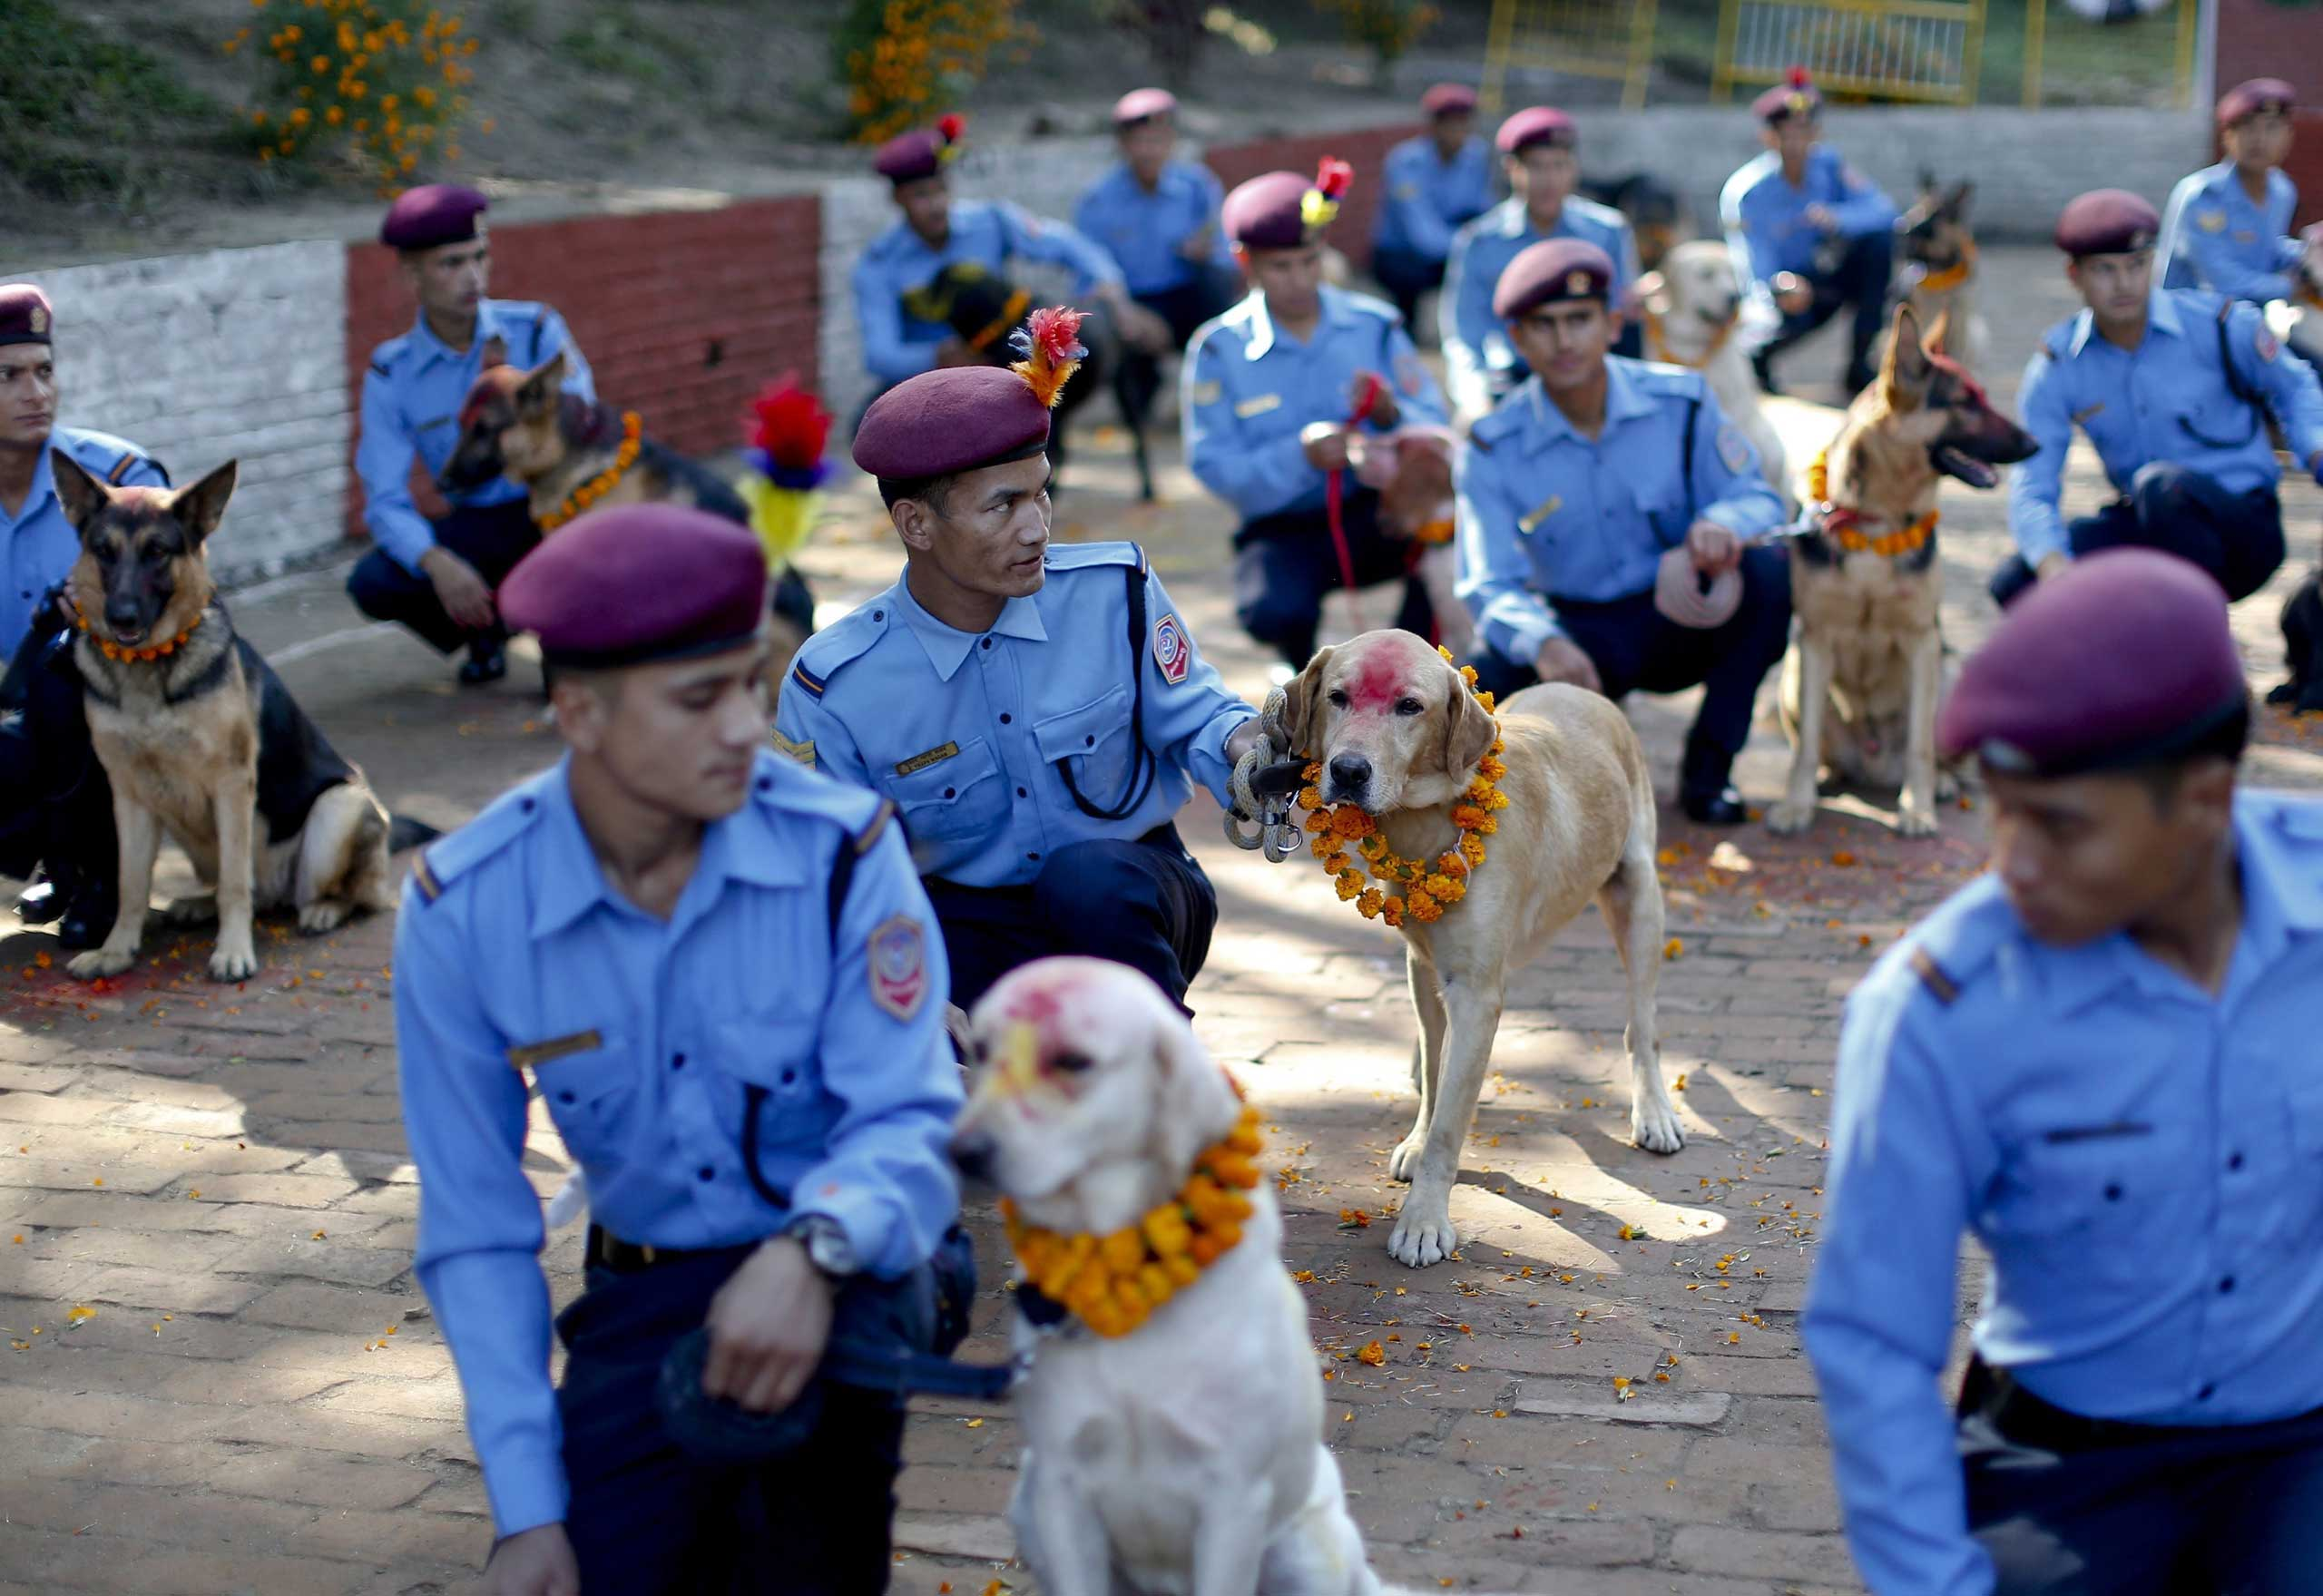 Oct. 22, 2014. Nepalese police officers kneel next to dogs with colored powder on their heads at Nepal's Central Police Dog Training School as part of the Diwali festival, also known as Tihar Festival, in Kathmandu, Nepal. The Tihar festival is the second major festival for Nepalese Hindus.